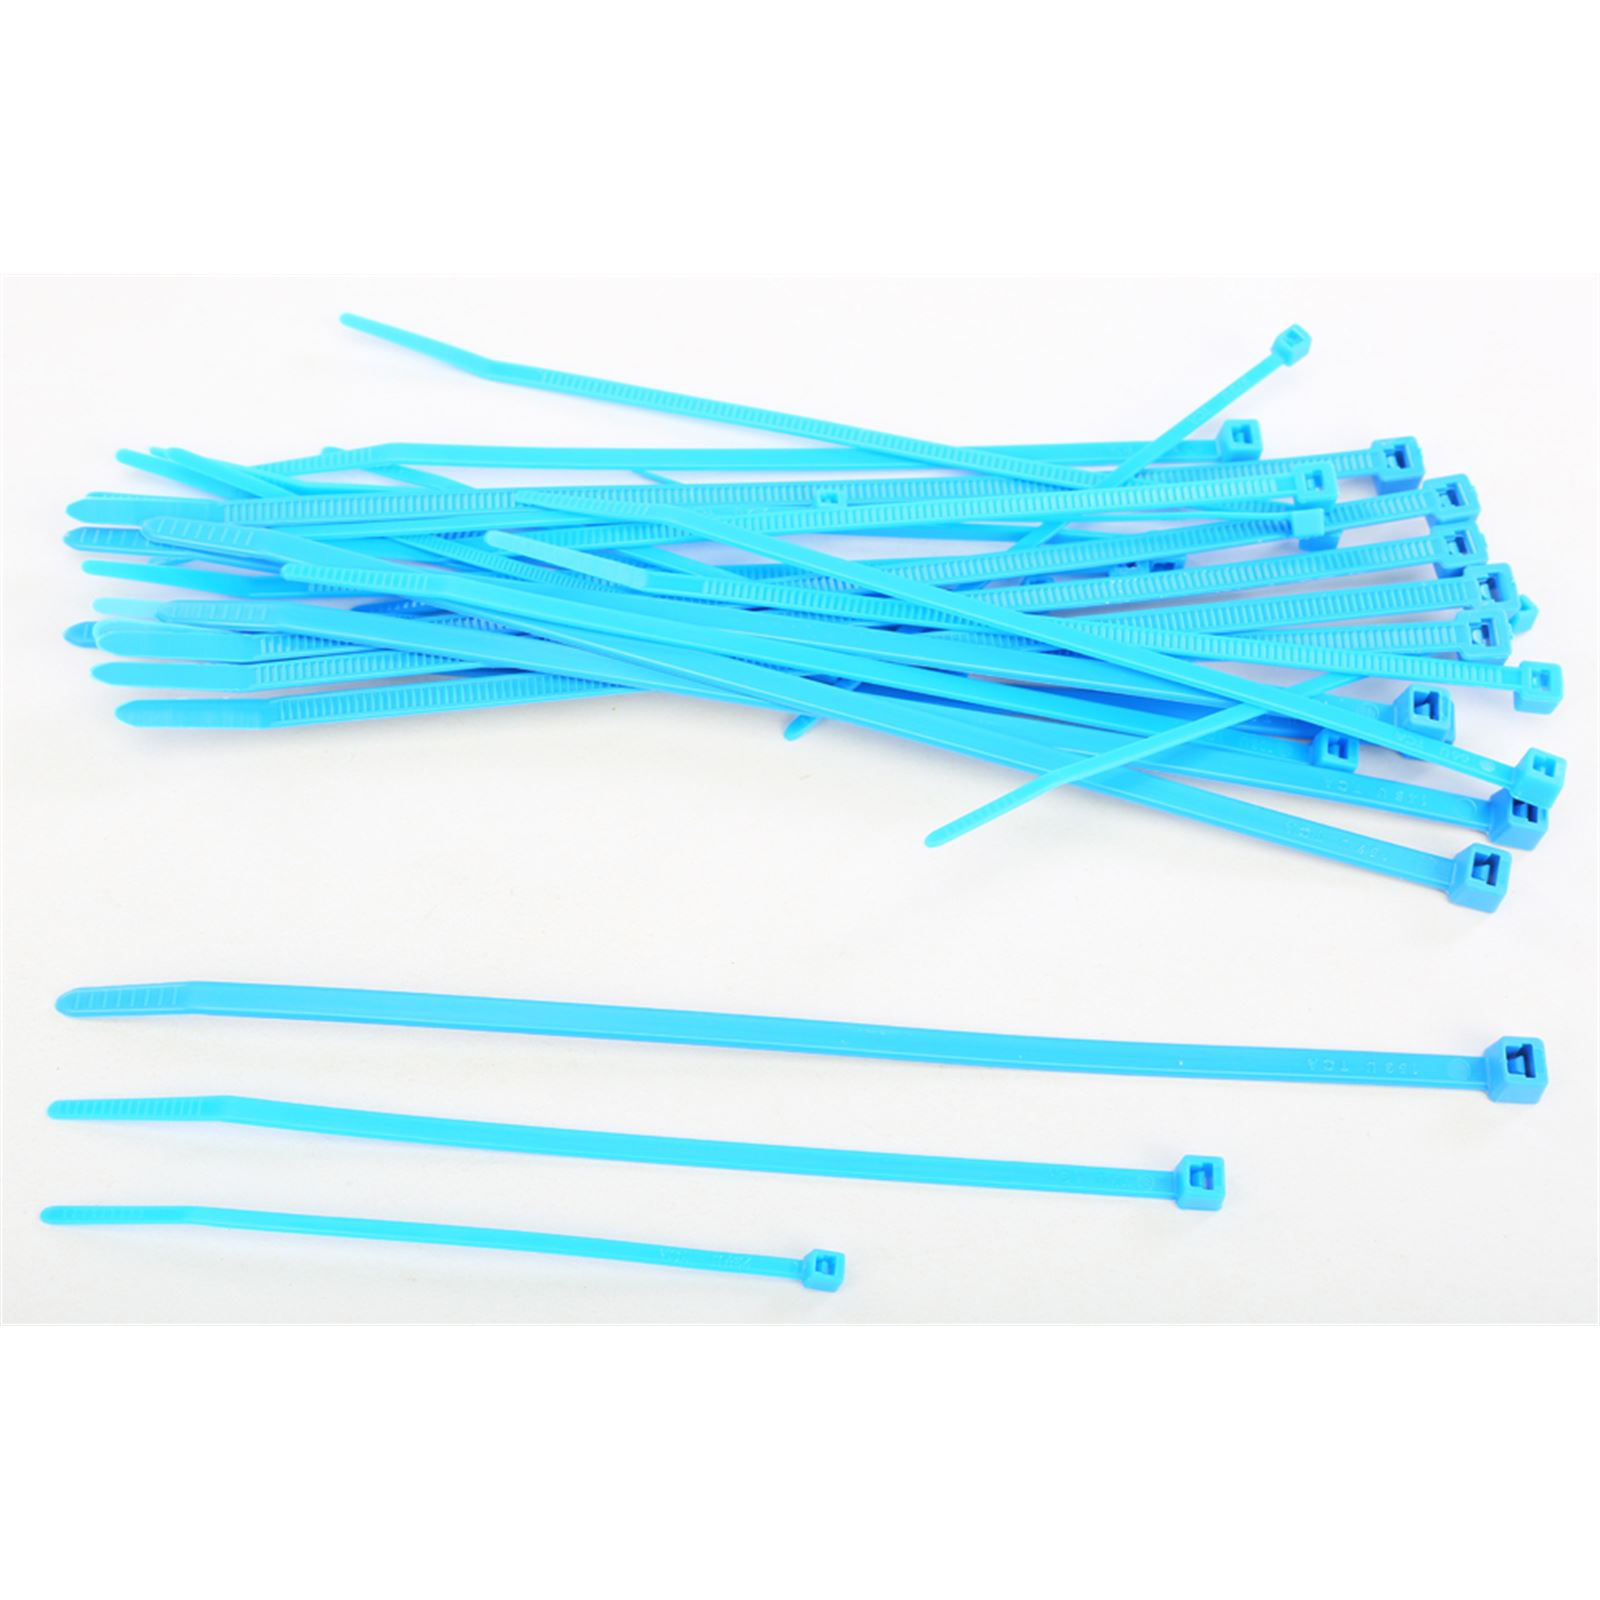 Helix Assorted Cable Ties